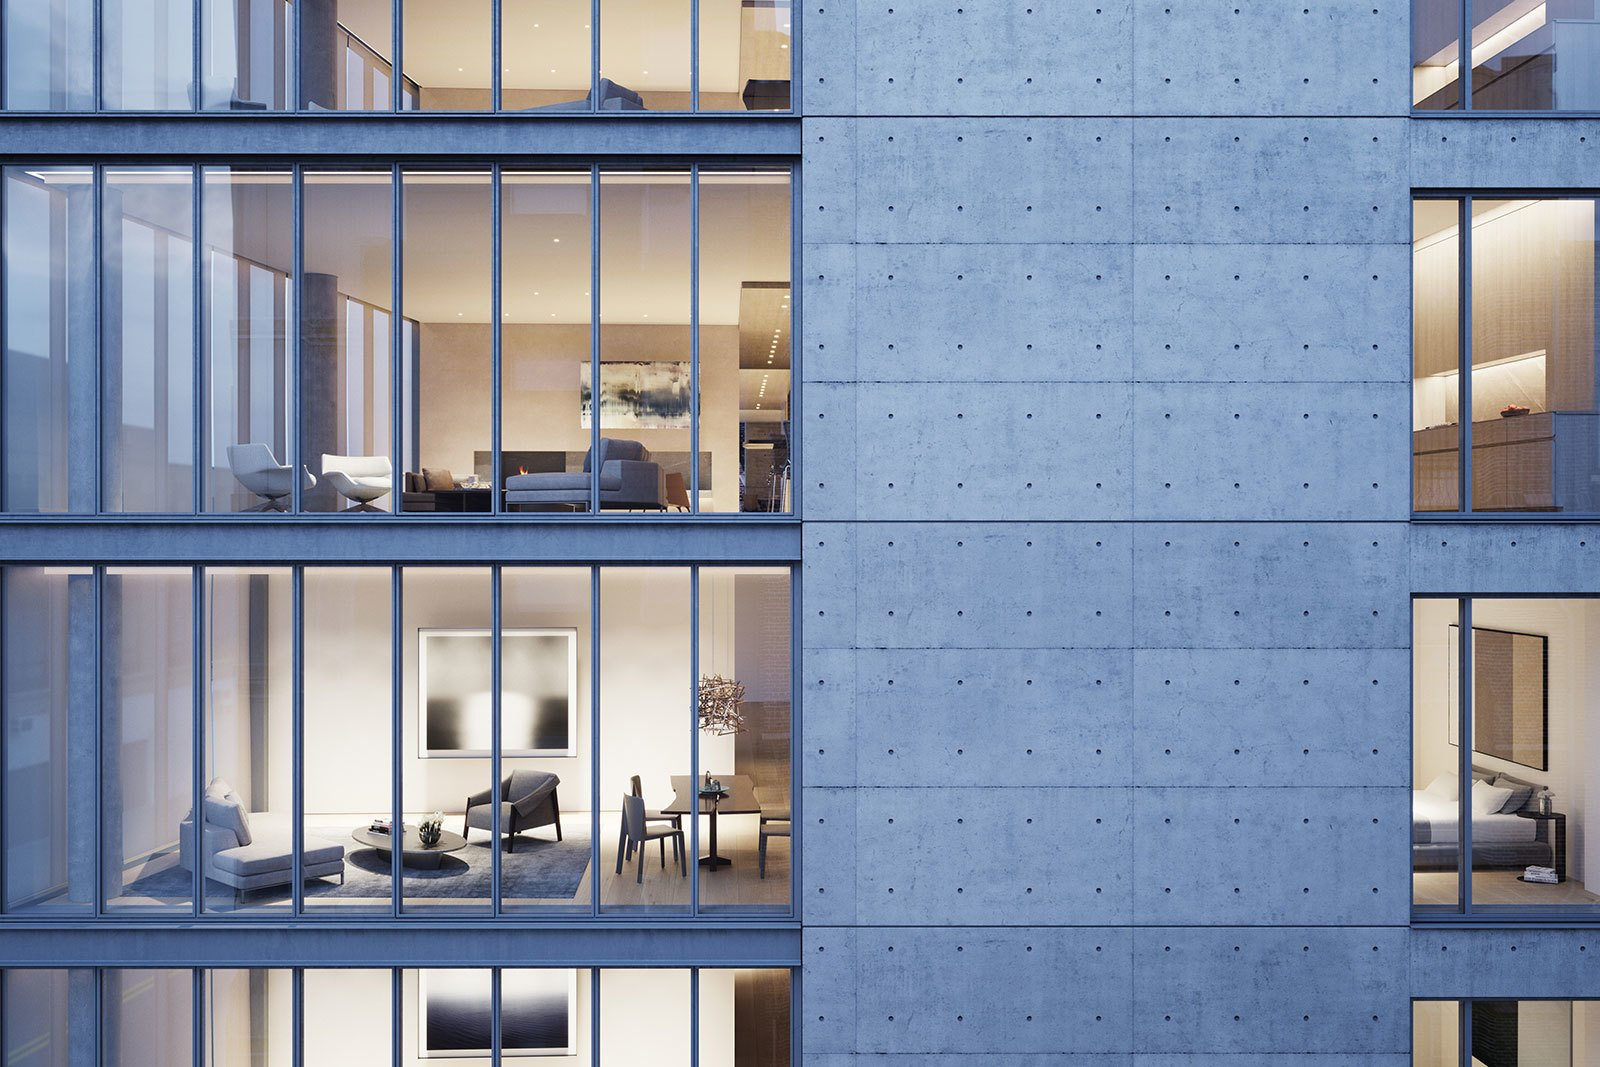 Photo 1 of 10 in A Look Into NYC's 152 Elizabeth Street, Tadao Ando's First Residential Project Outside of Asia